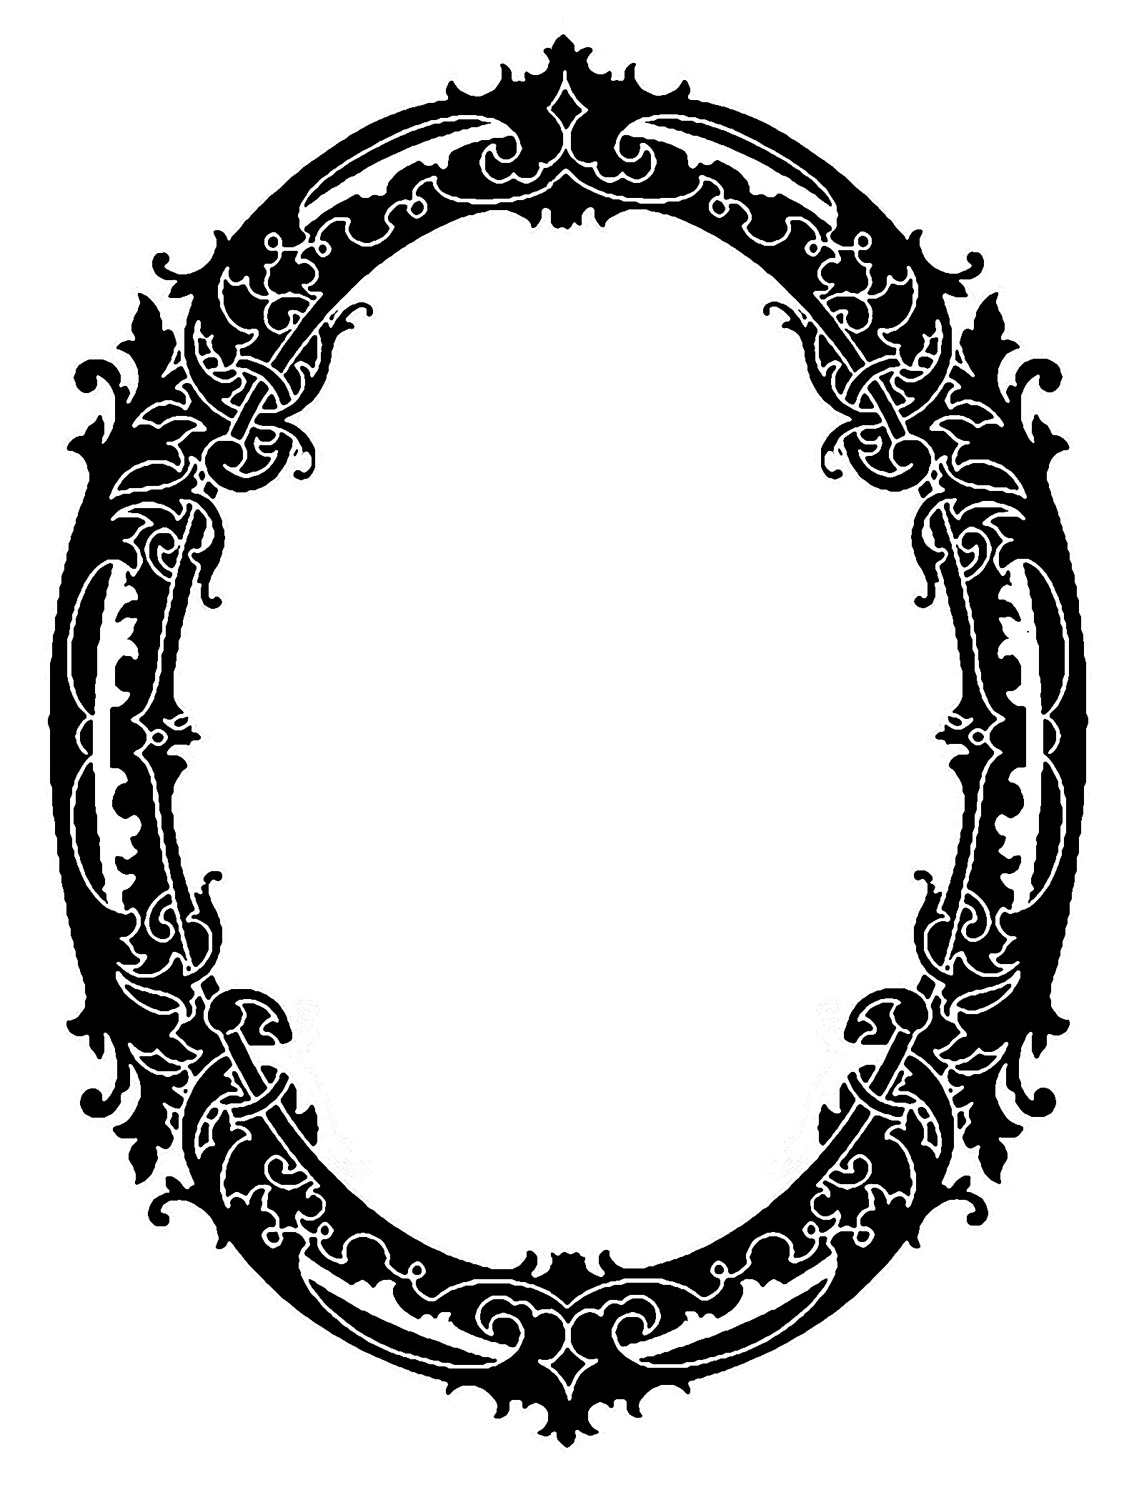 Antique Frame Drawing at GetDrawings.com | Free for personal use ...